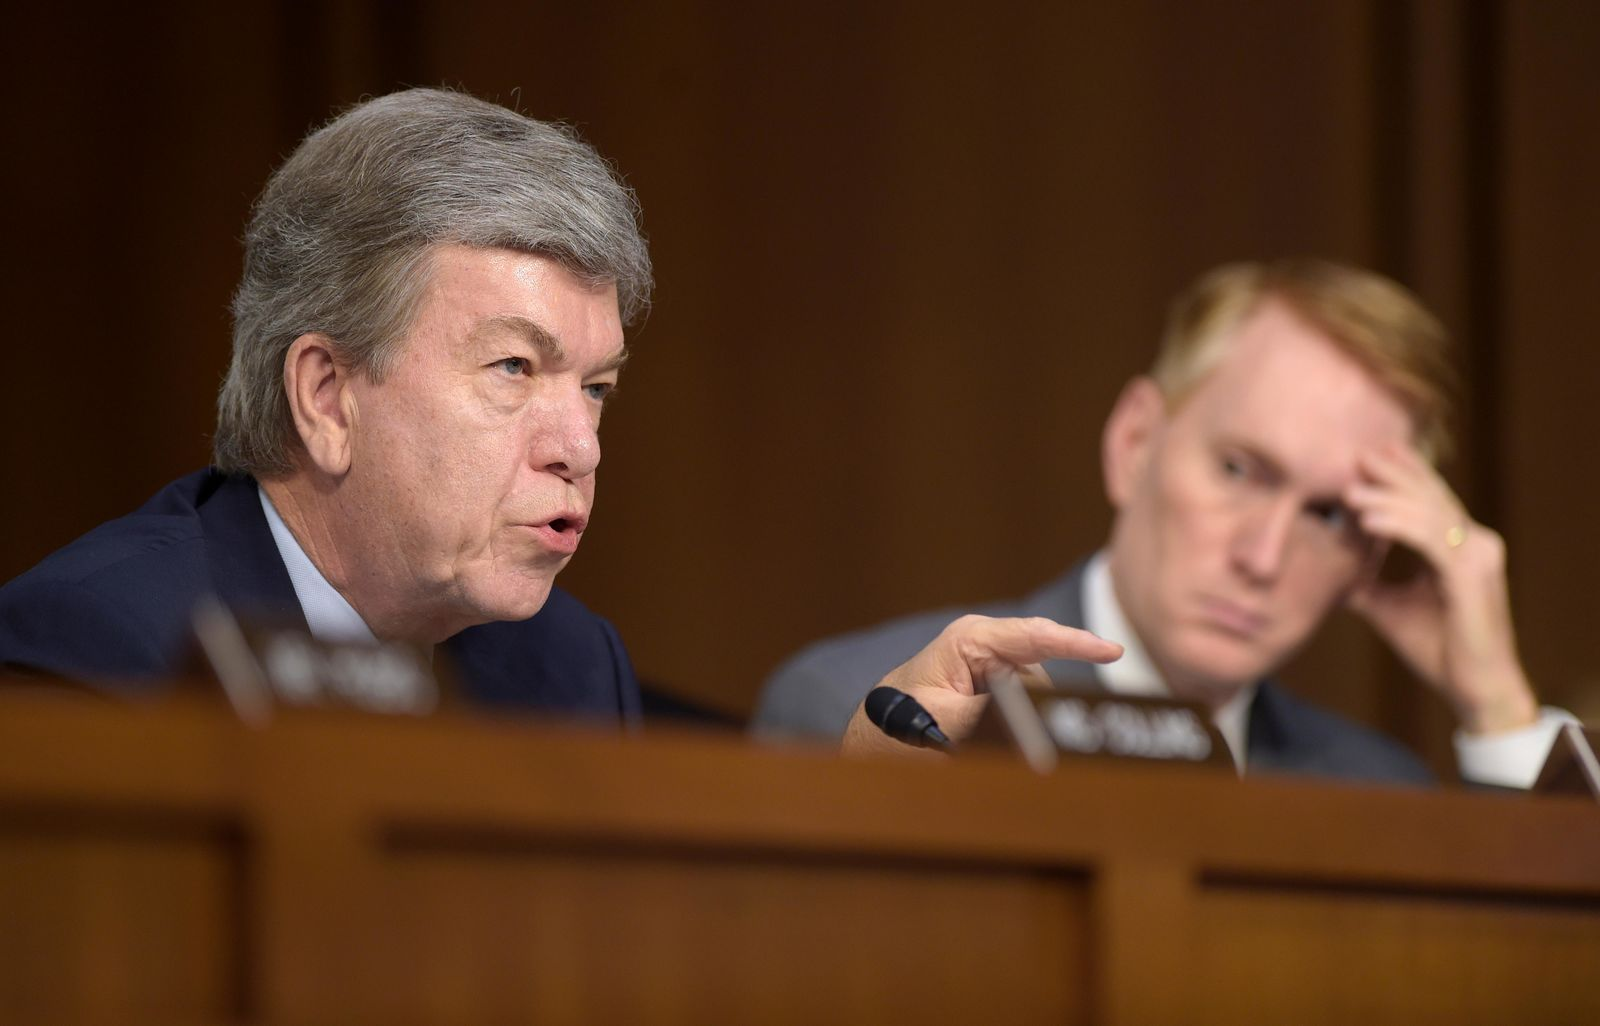 Sen. Roy Blunt, R-Mo., left, sitting next to Sen. James Lankford, R-Okla., right, asks a question during a Senate Intelligence Committee hearing about the Foreign Intelligence Surveillance Act, on Capitol Hill in Washington, Wednesday, June 7, 2017. (AP Photo/Susan Walsh)